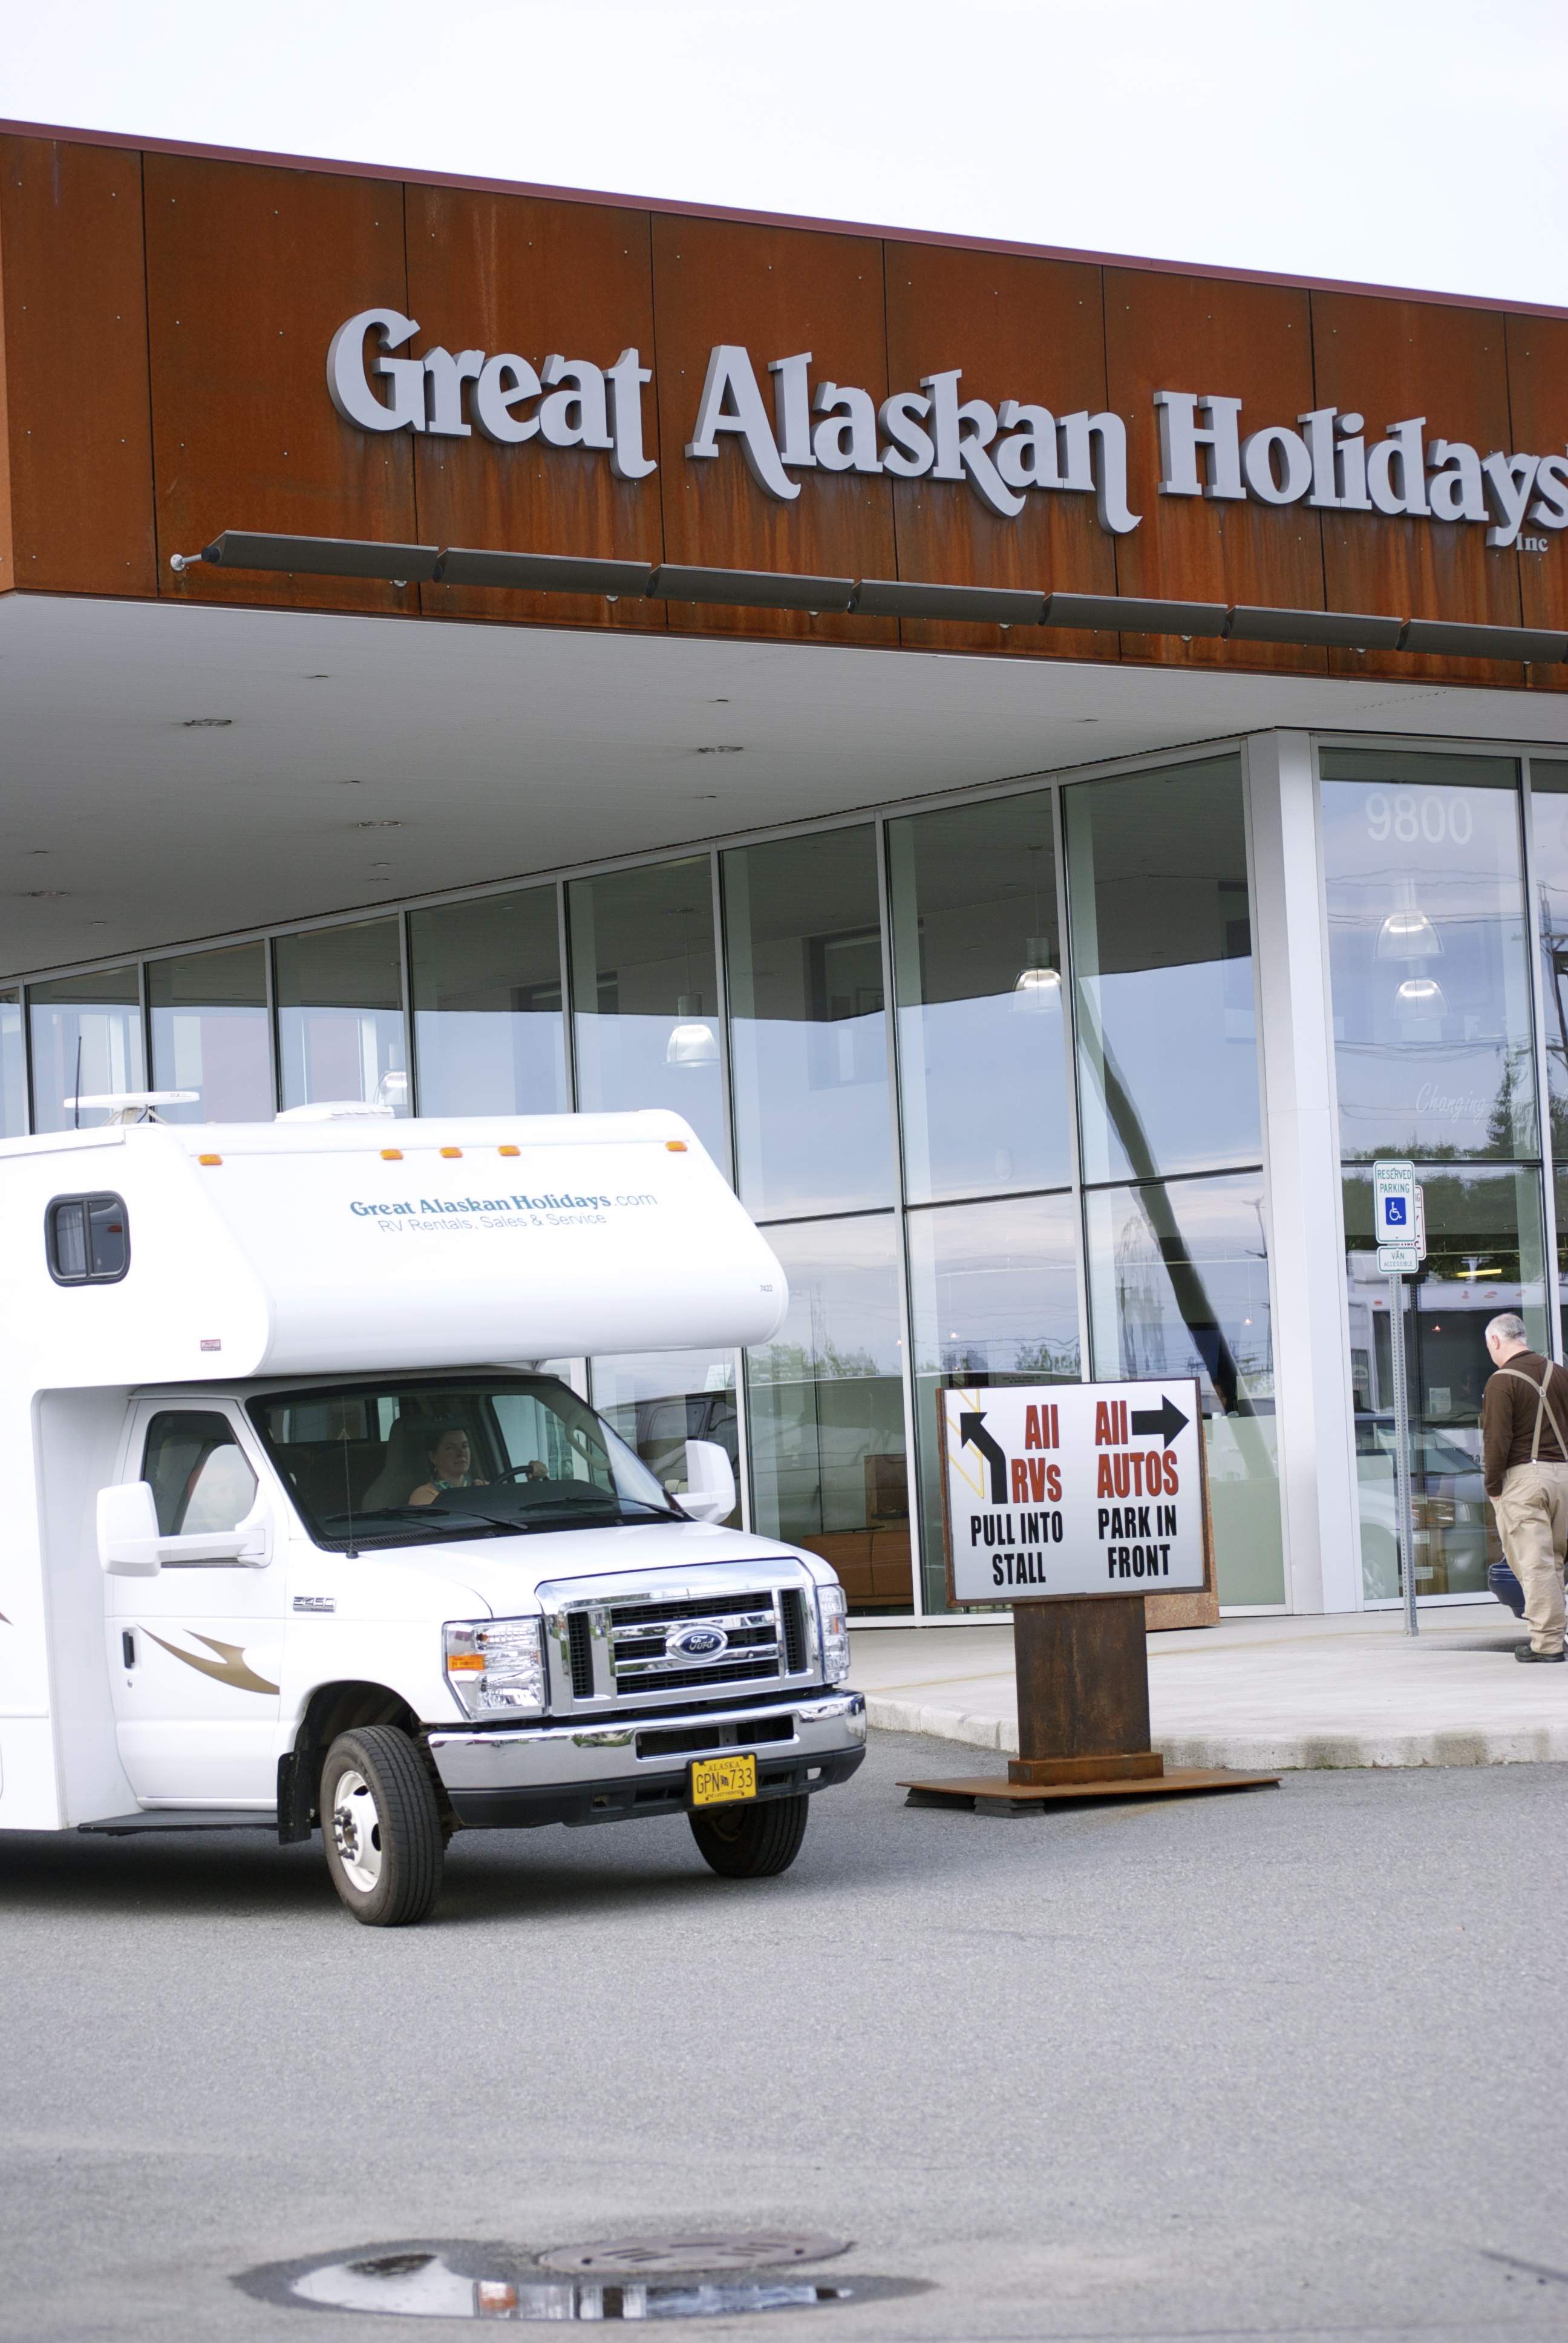 Great Alaskan Holidays has a huge inventory of new and pre-owned RVs, and folks to help navigate the whole process.